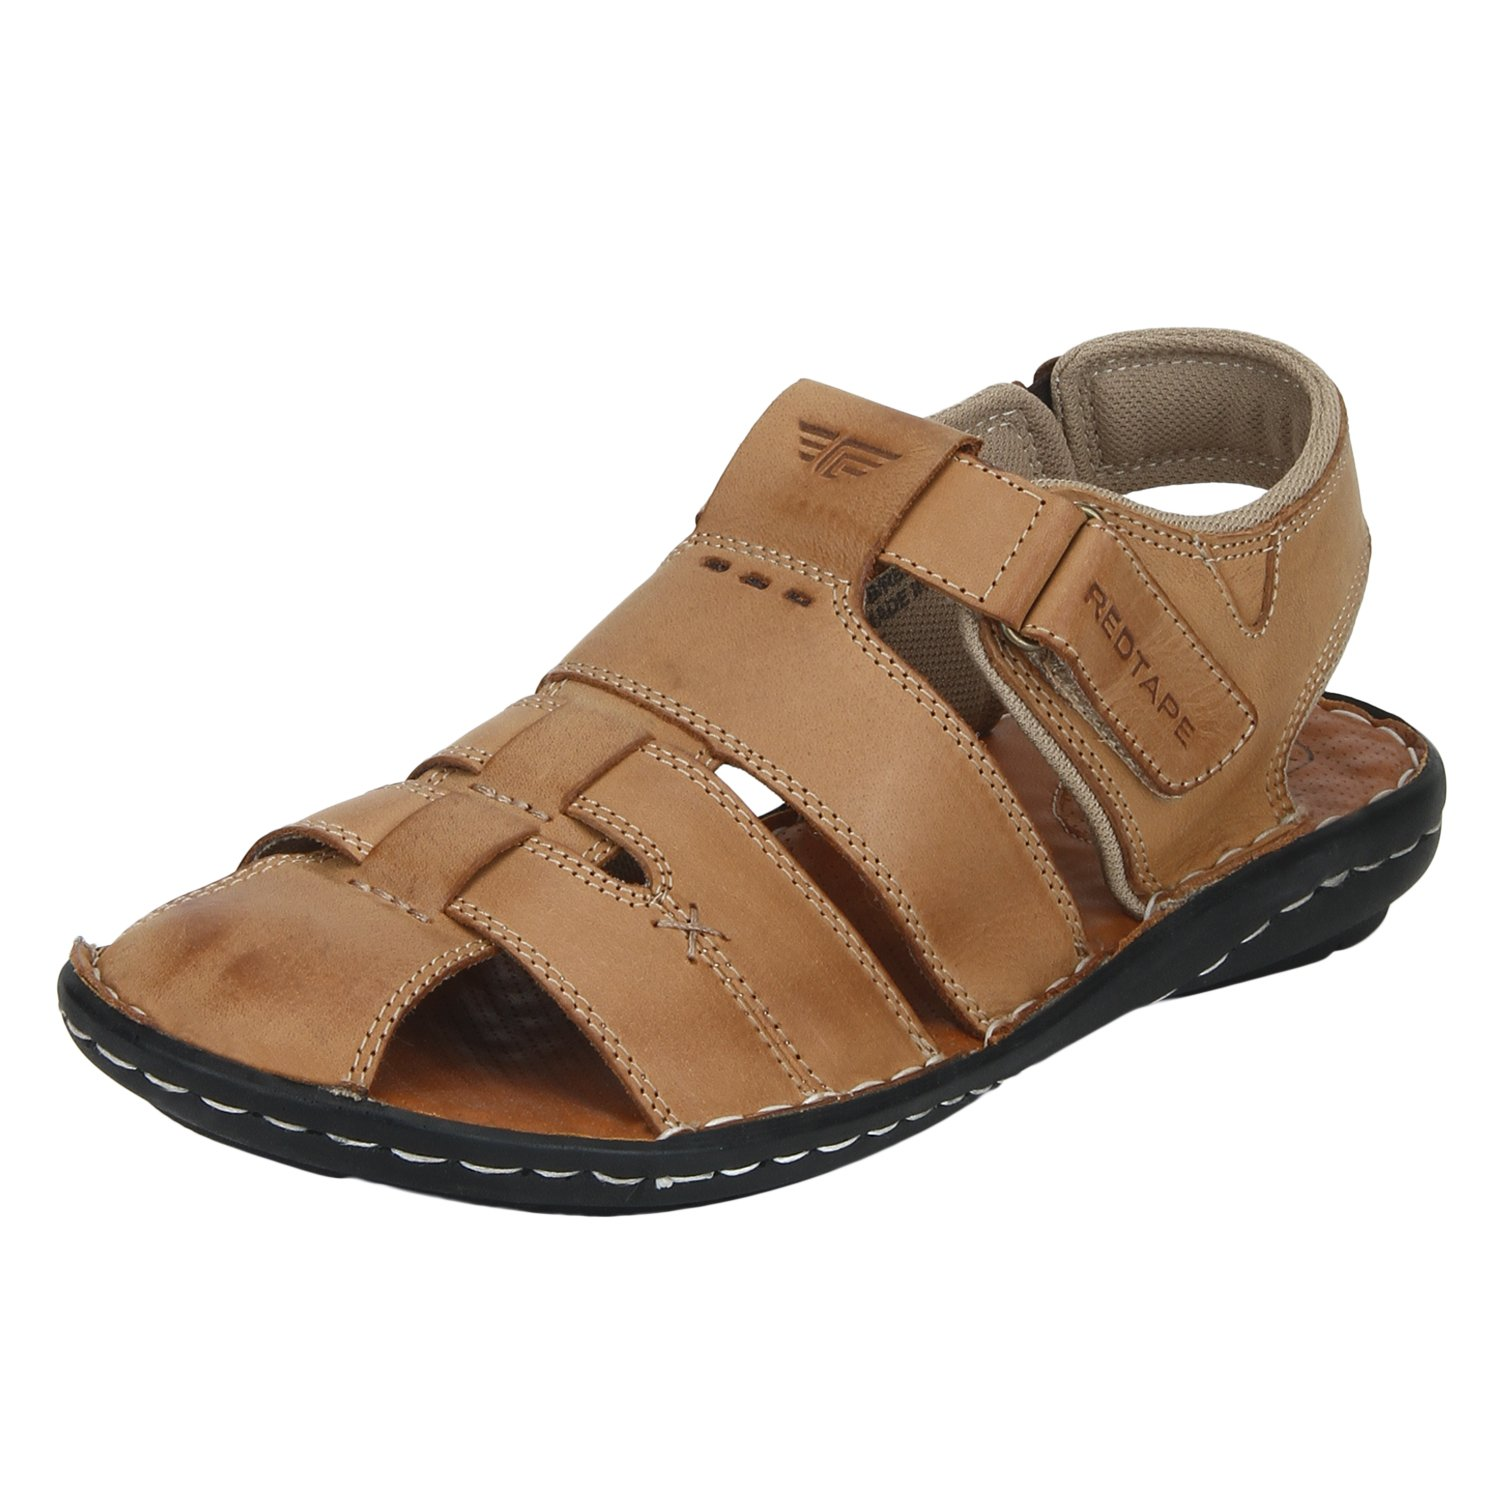 Red Tape Men's Tan Leather Sandals - 10